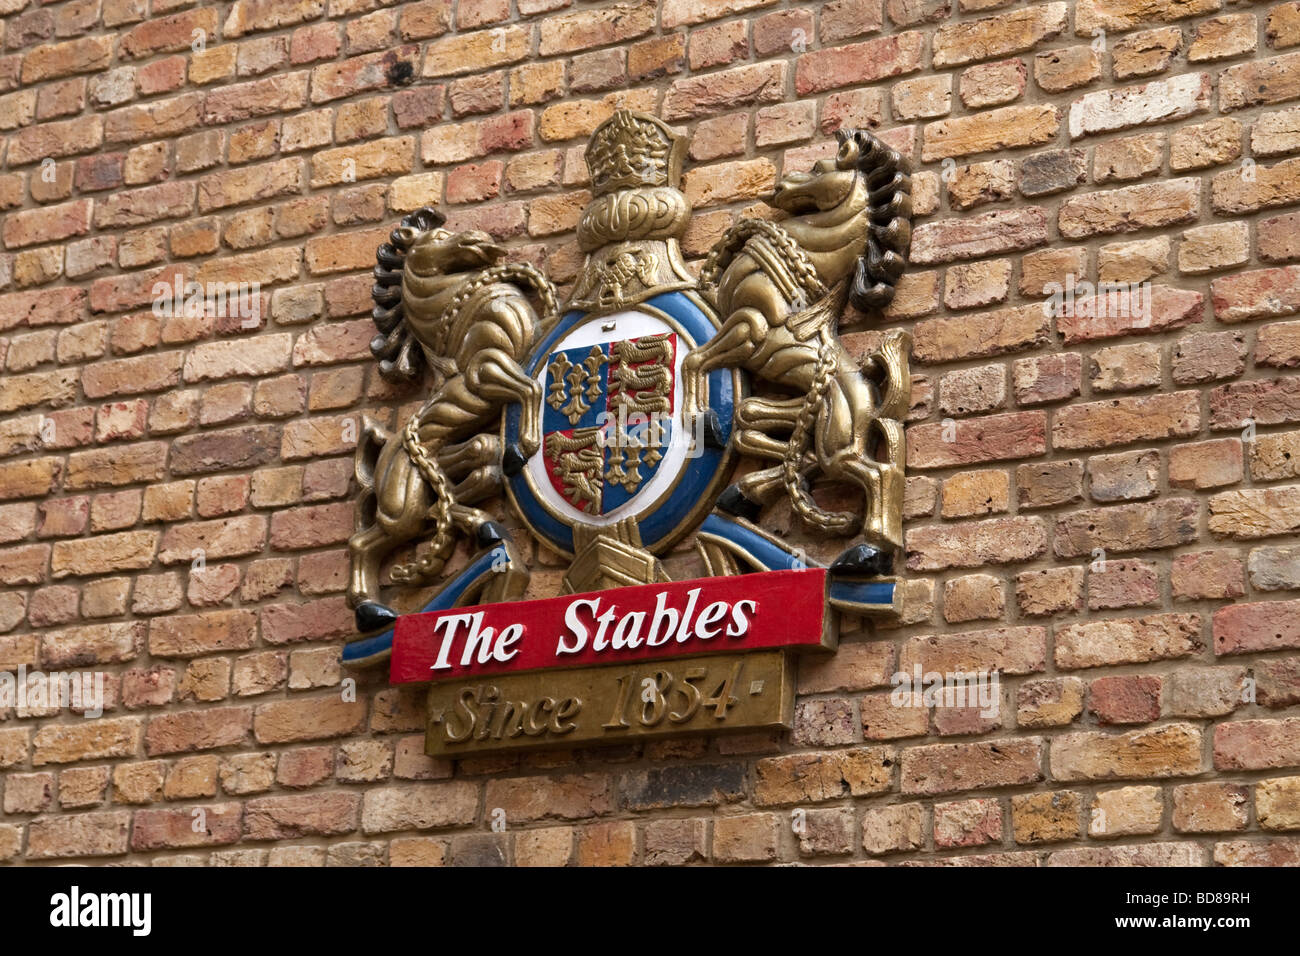 Coat of arms in the newly refurbished part of the Stables Market, Camden - Stock Image